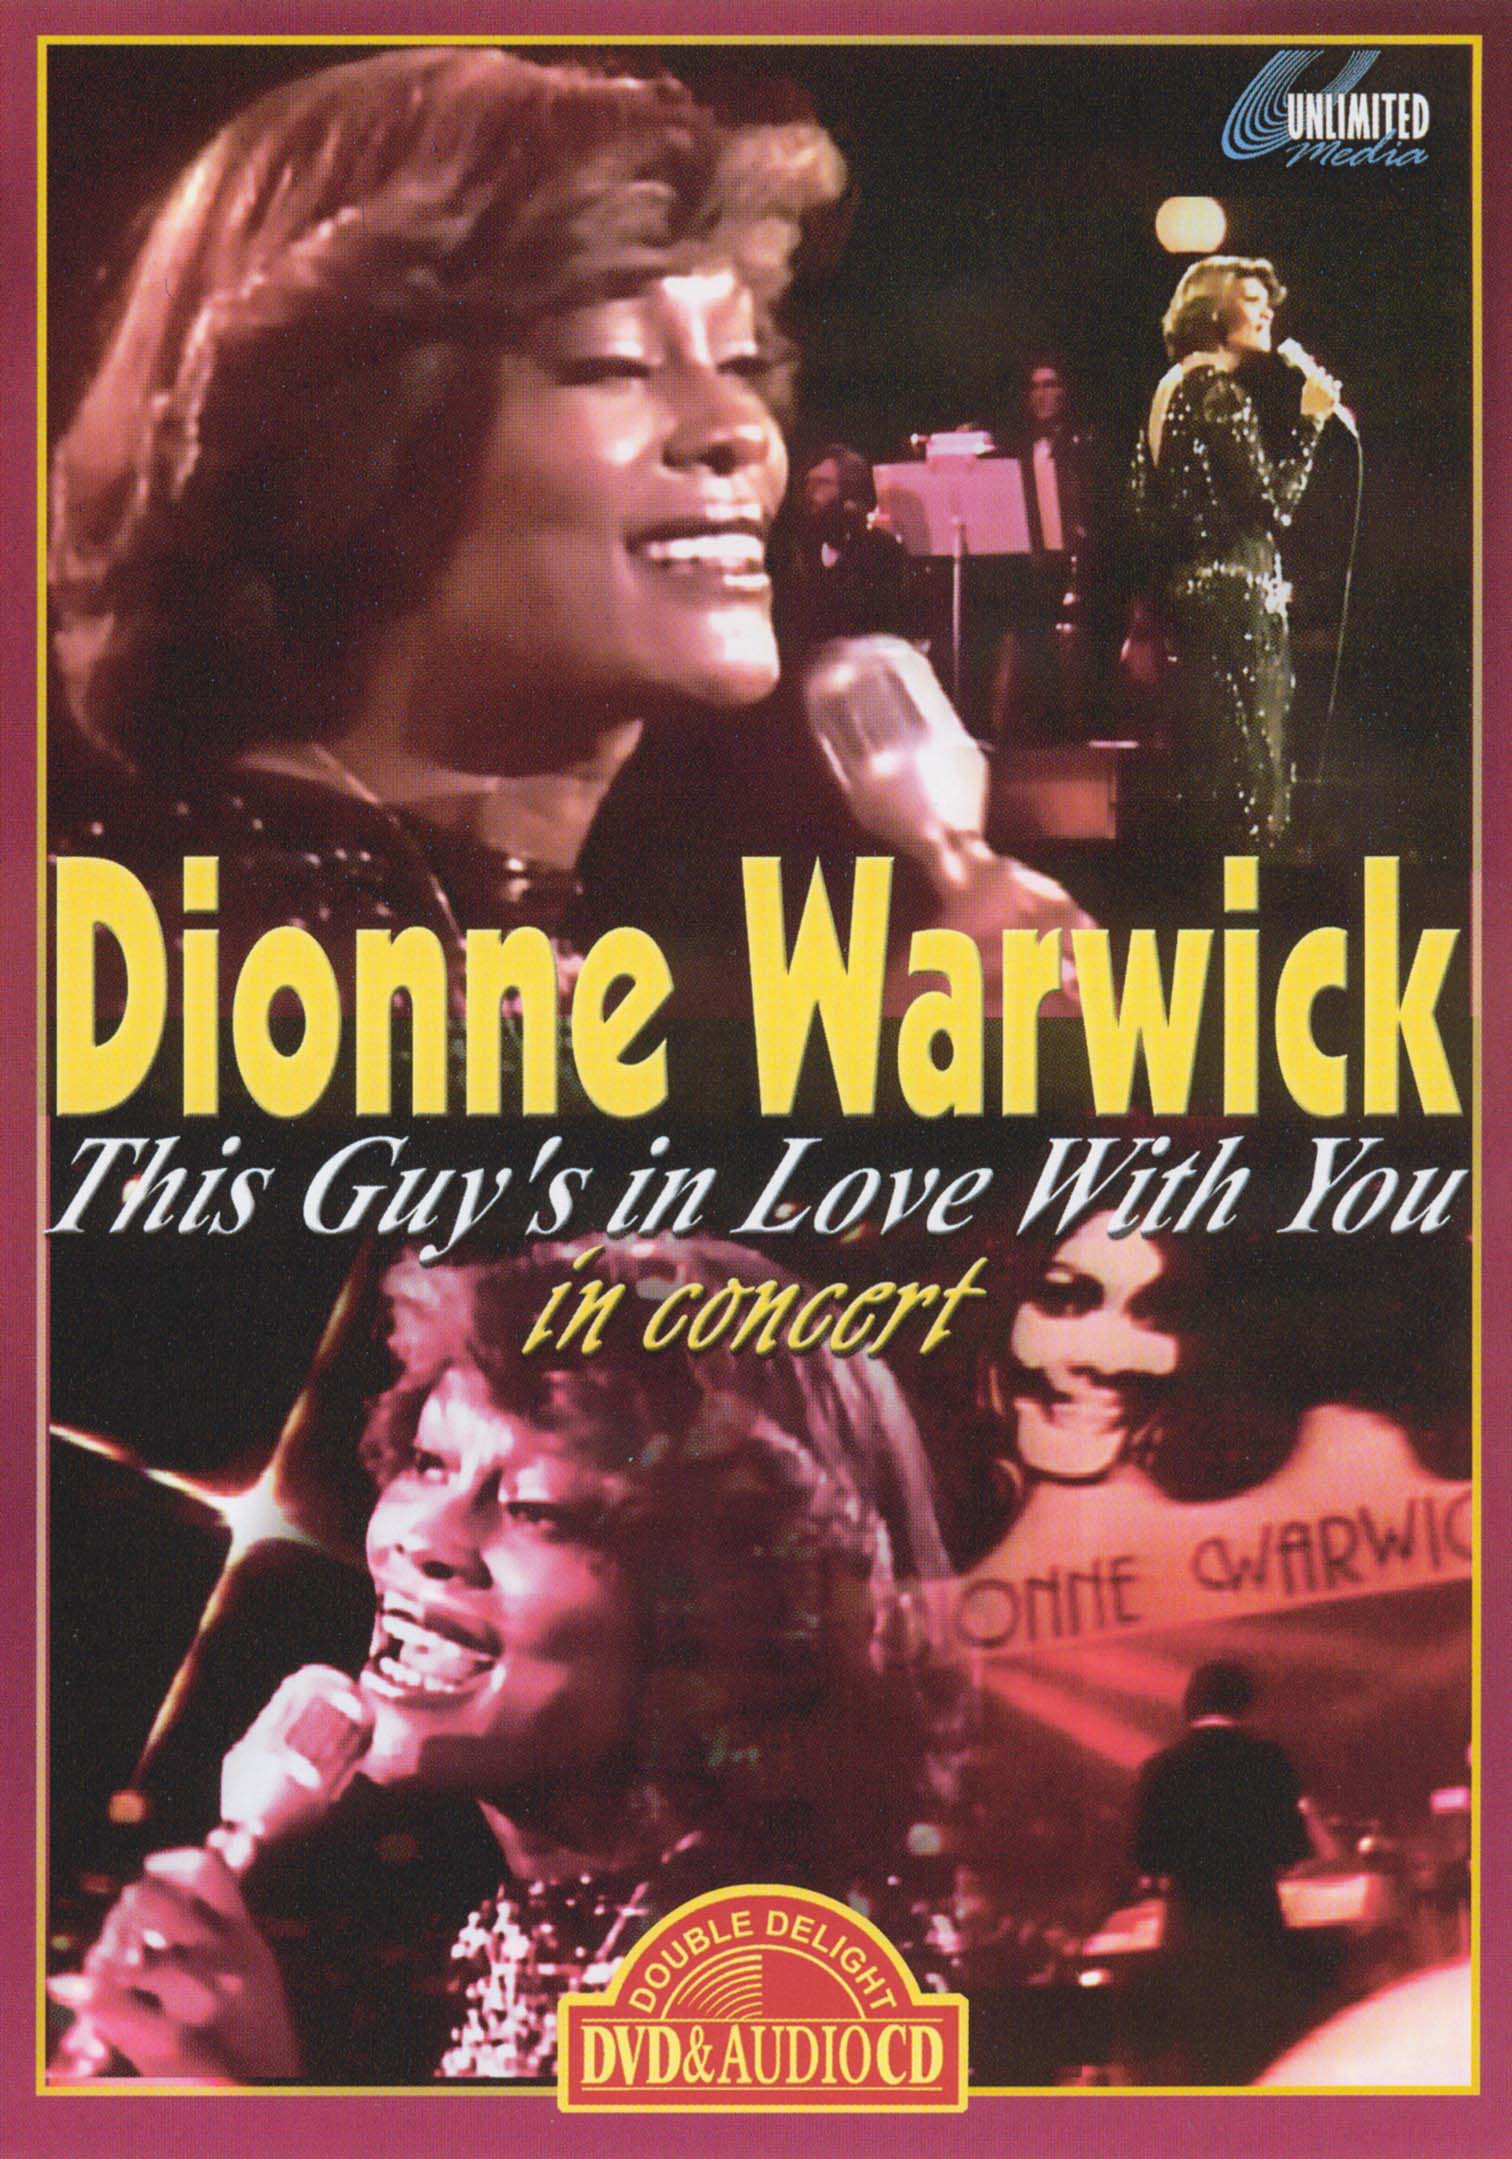 Dionne Warwick: This Guy's in Love With You - In Concert